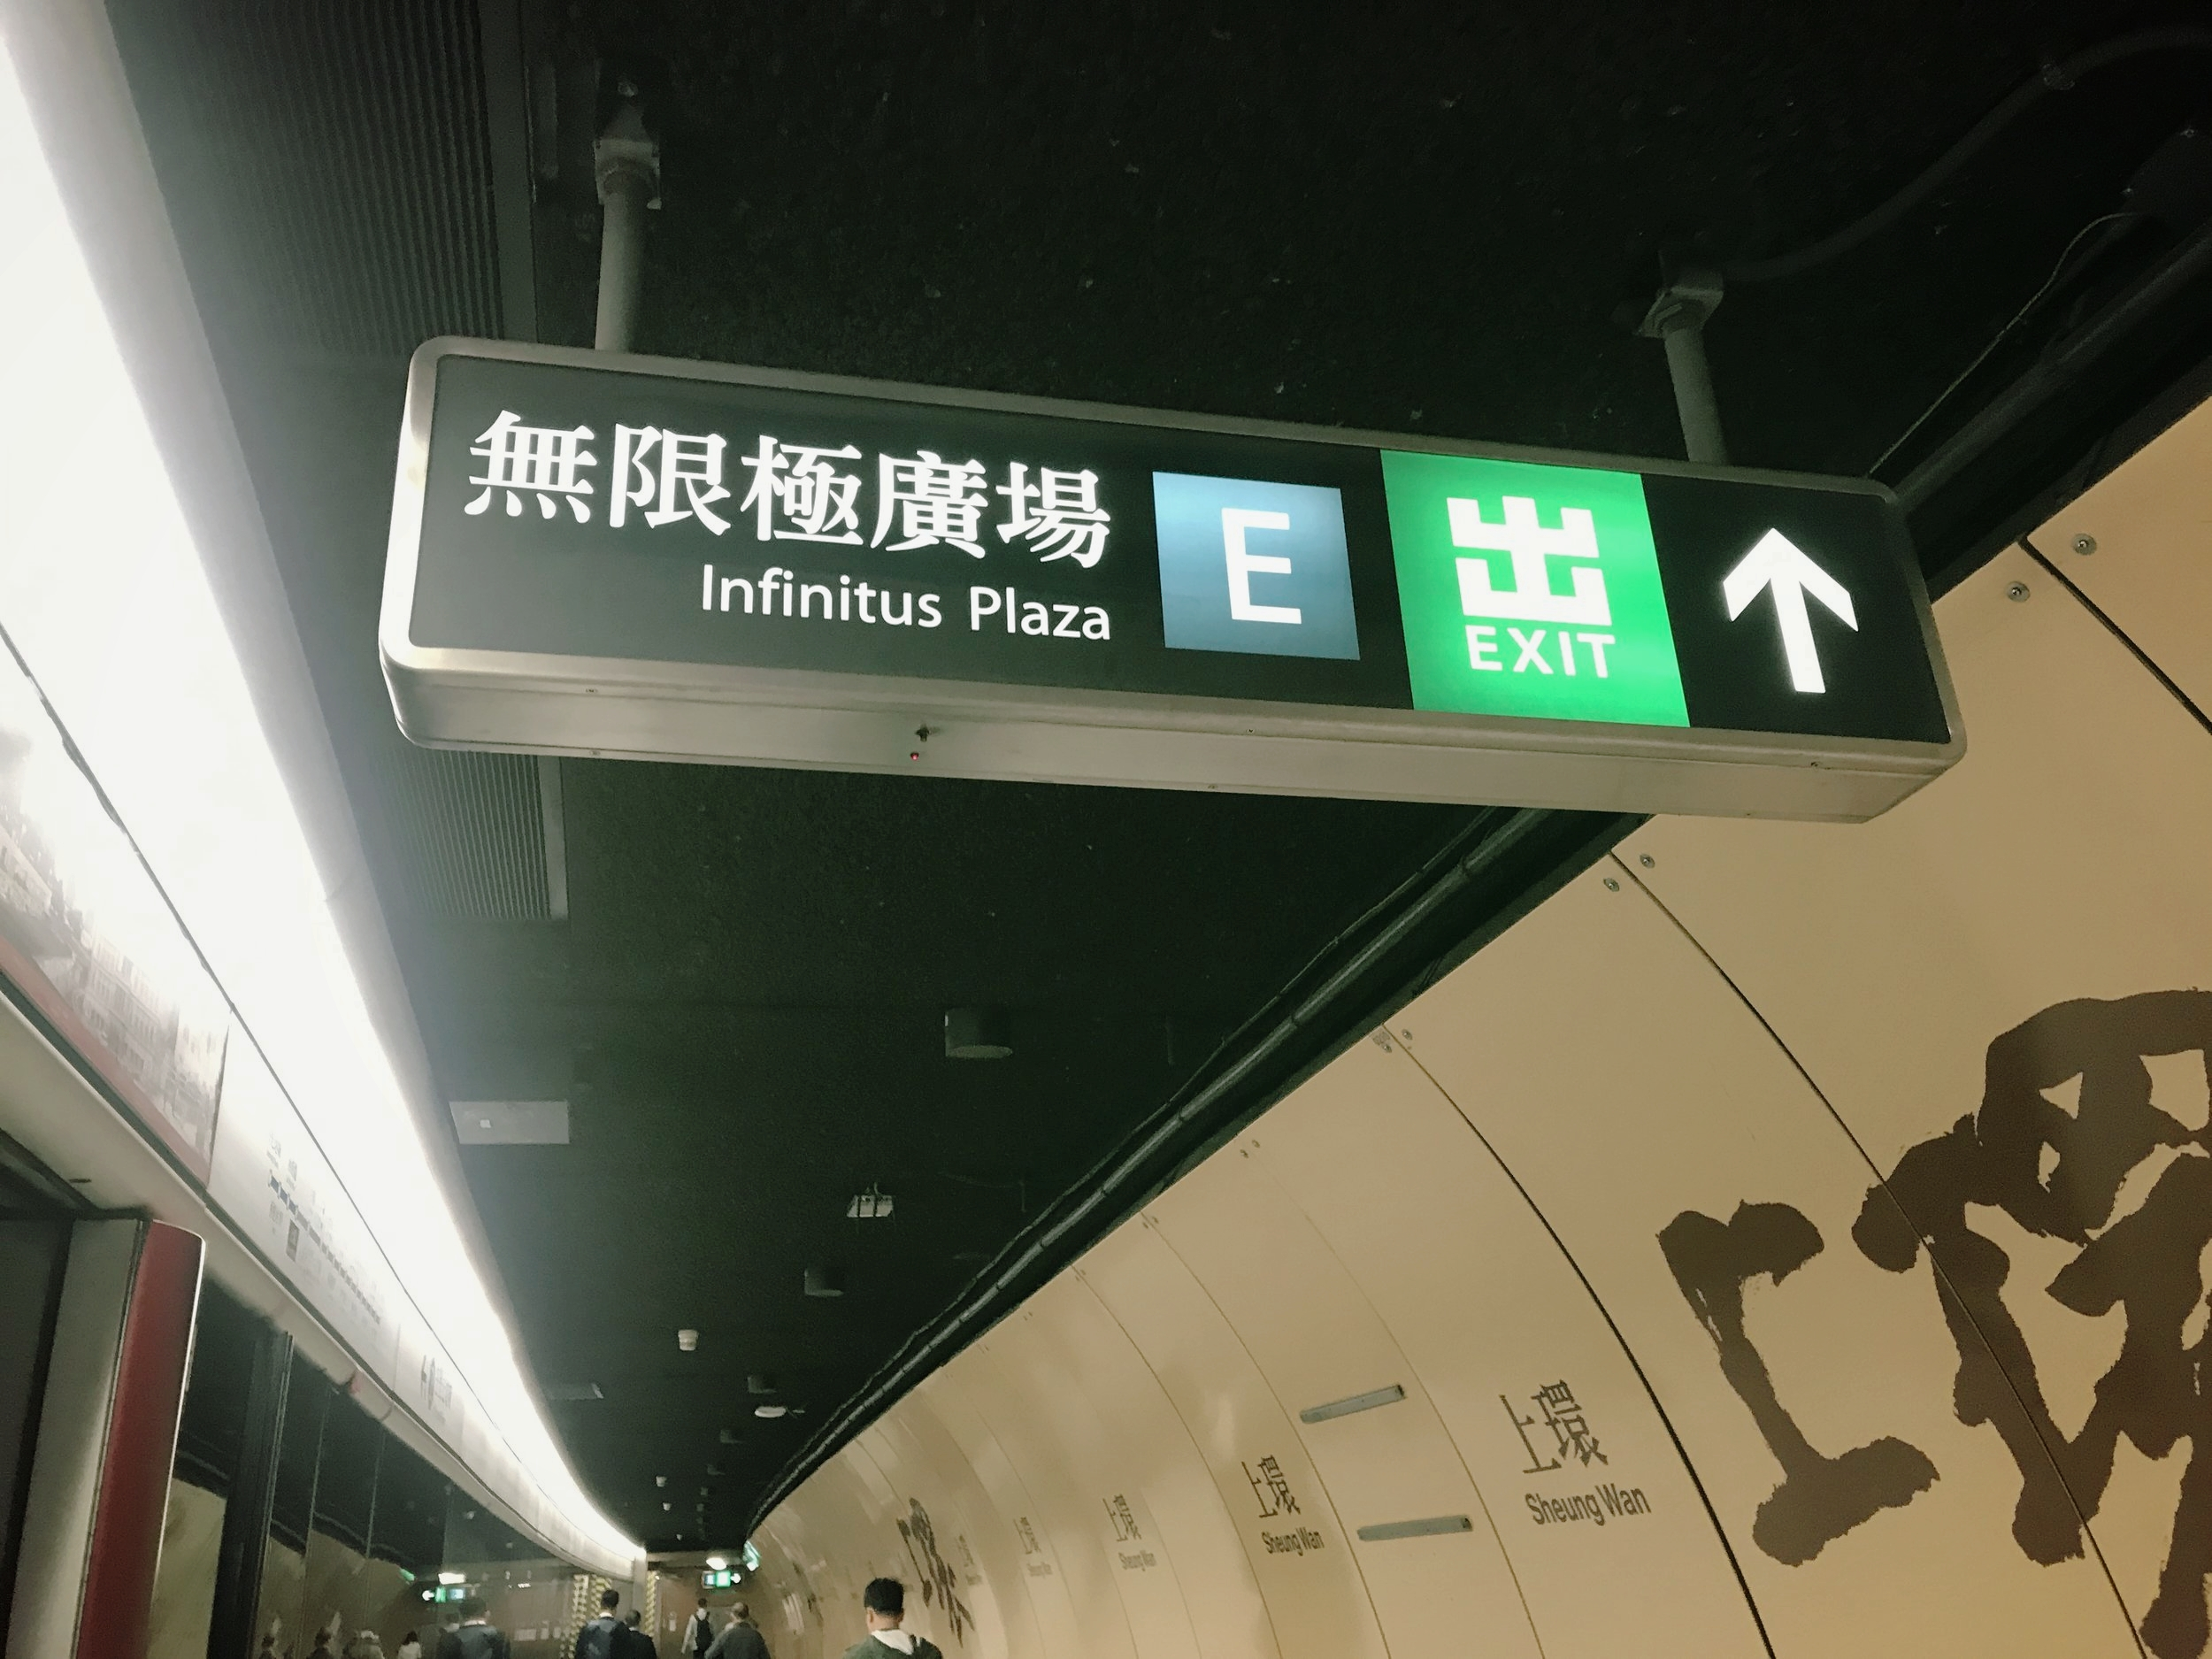 turn left - as soon as you exit the train.